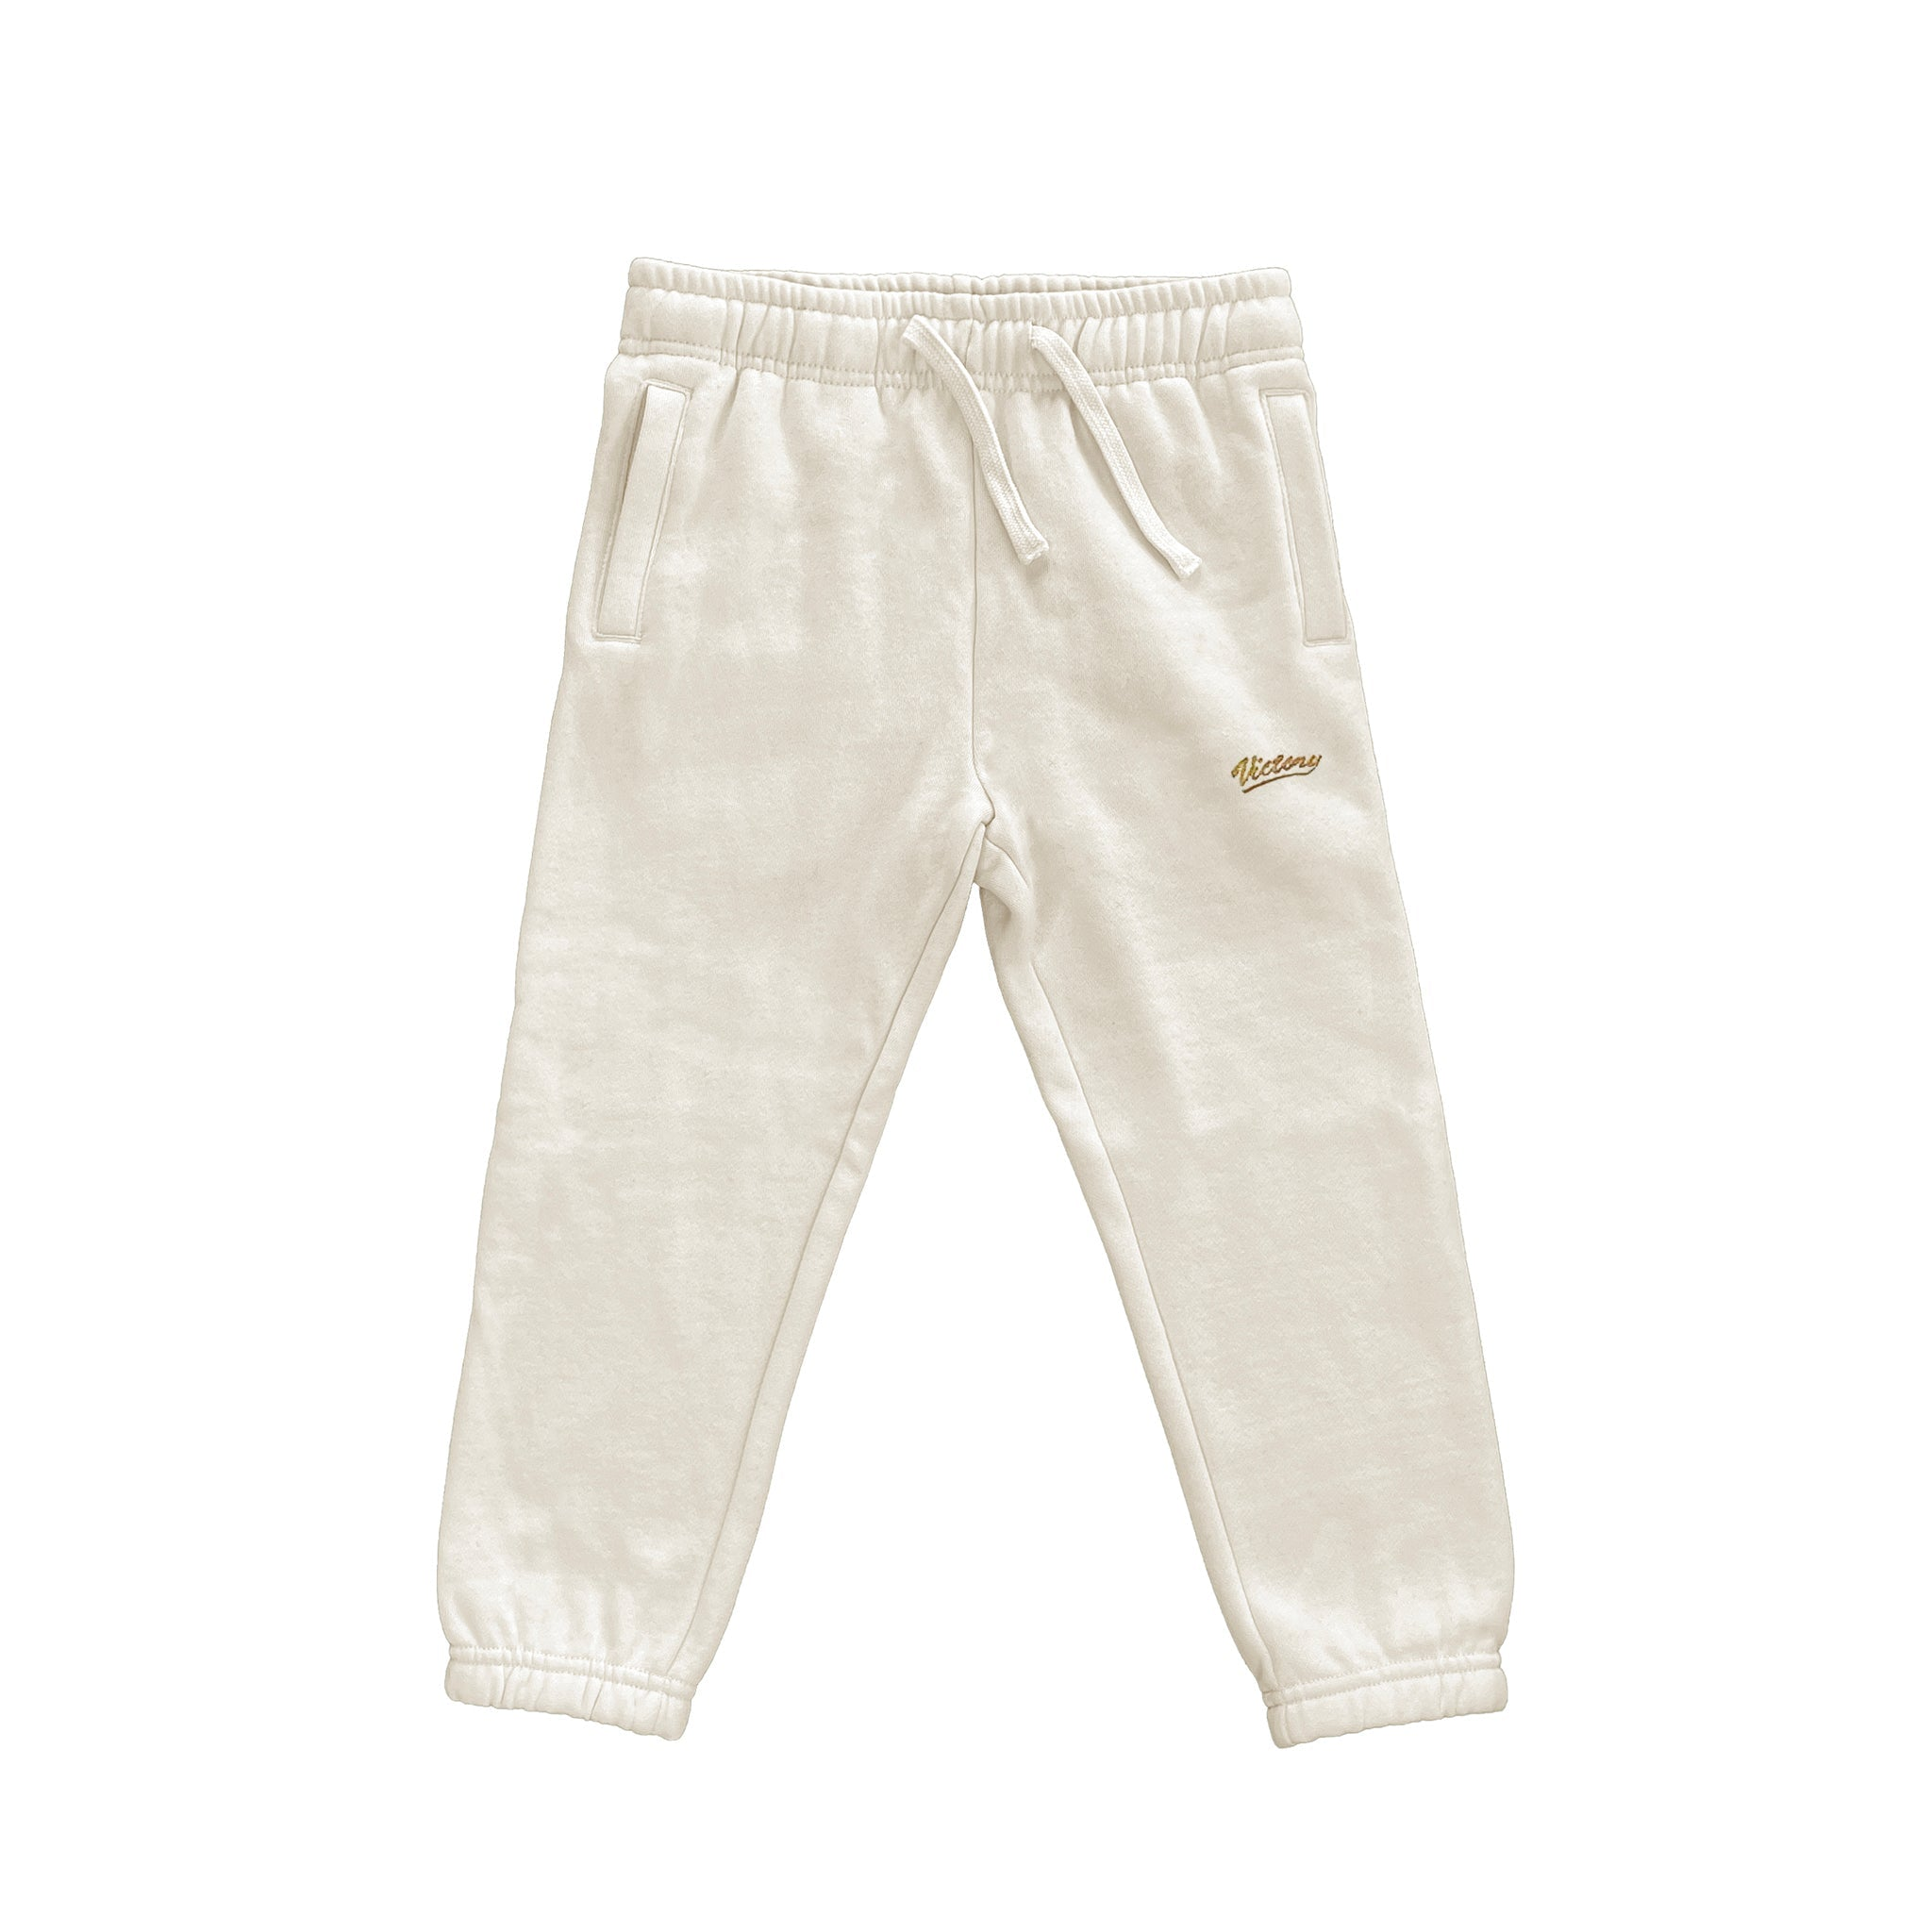 Premium quality ripstop cargo pants in black by New Zealand skate and streetwear clothing label VIC Apparel. American classic vintage military workwear style.